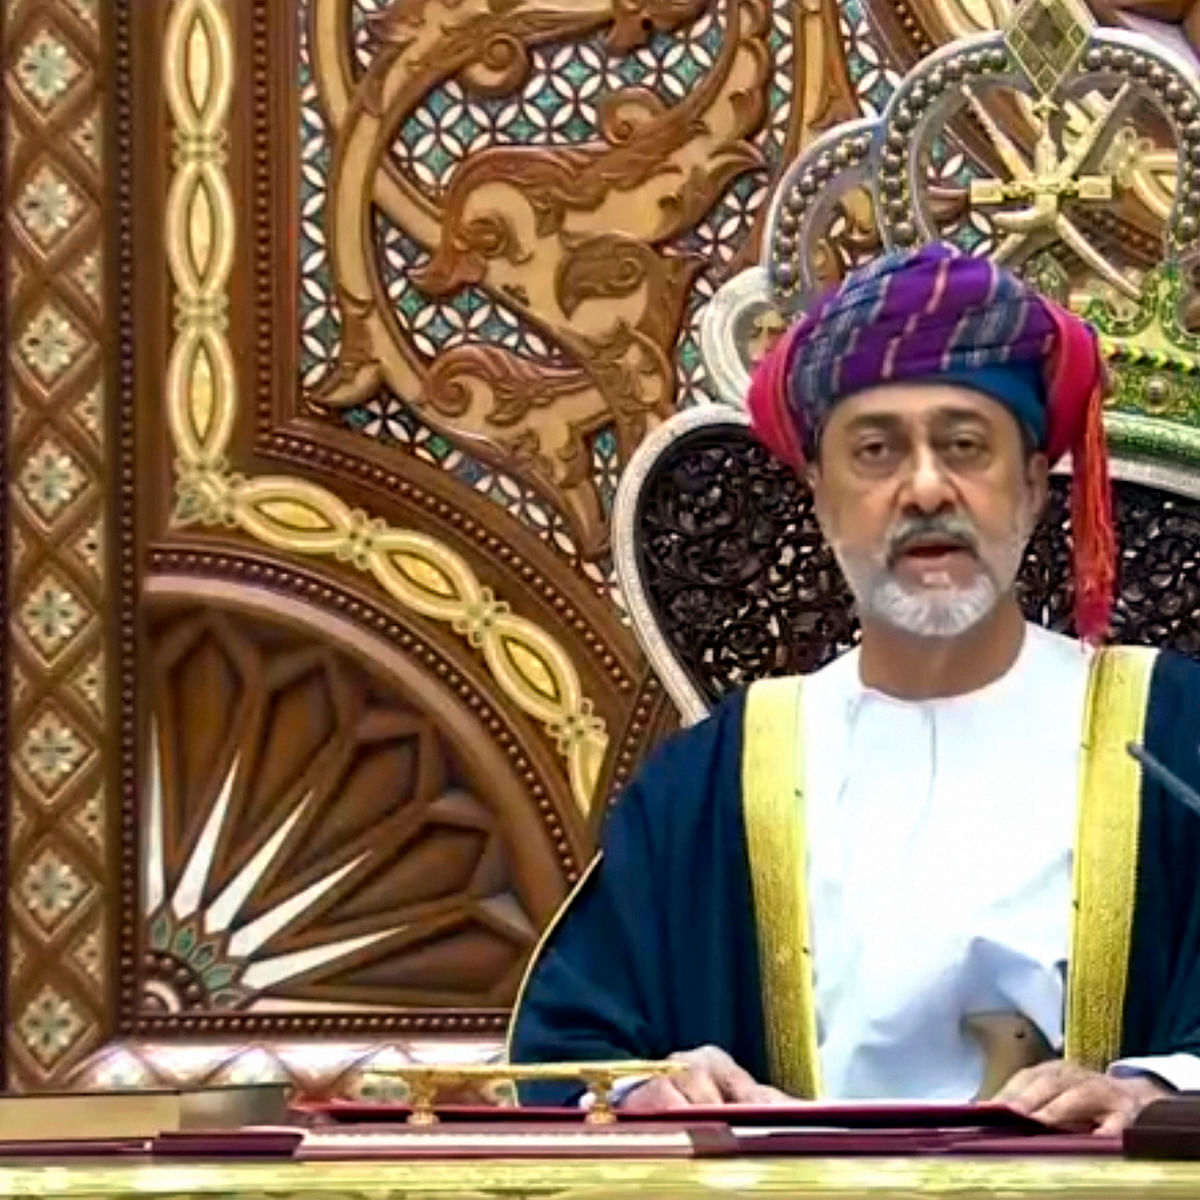 Oman: Late sultan's cousin sworn in as new ruler